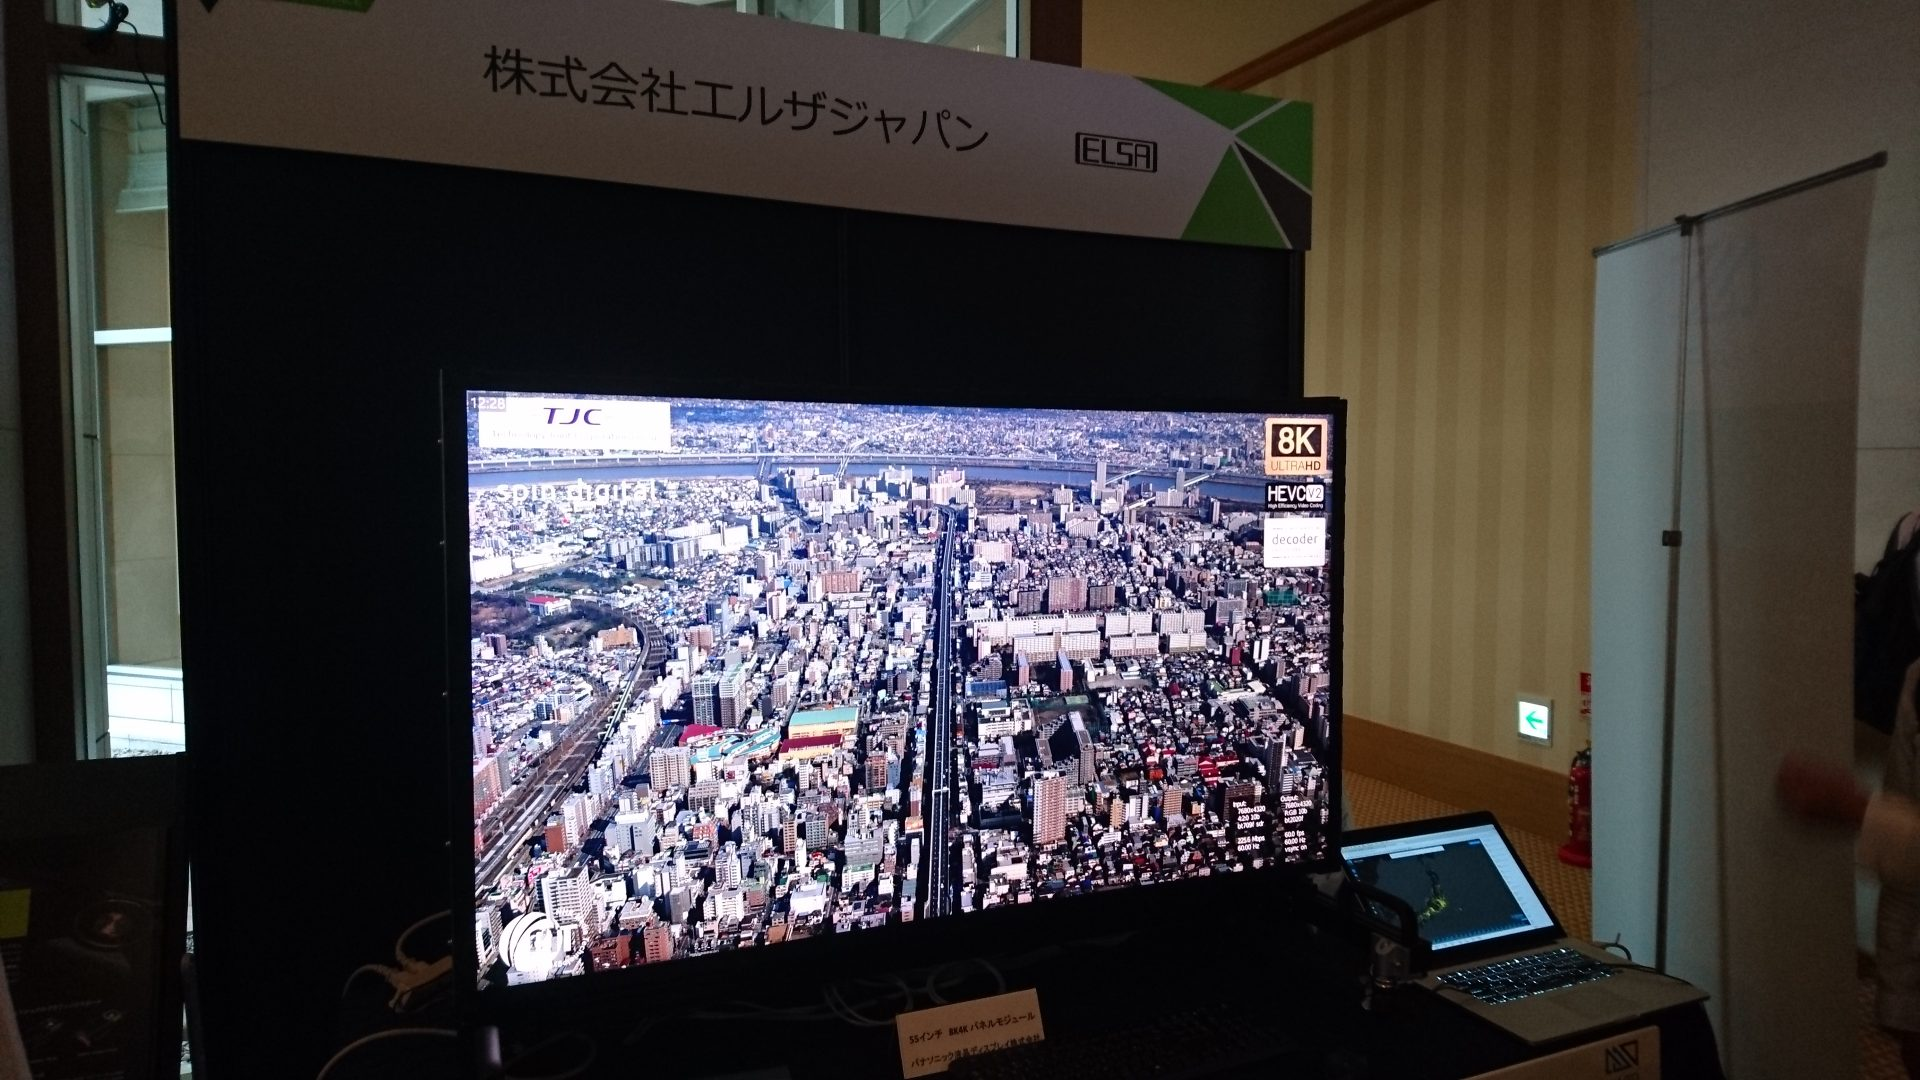 Spin Digital 8K Media Player Demonstrated at GTC Japan 2016